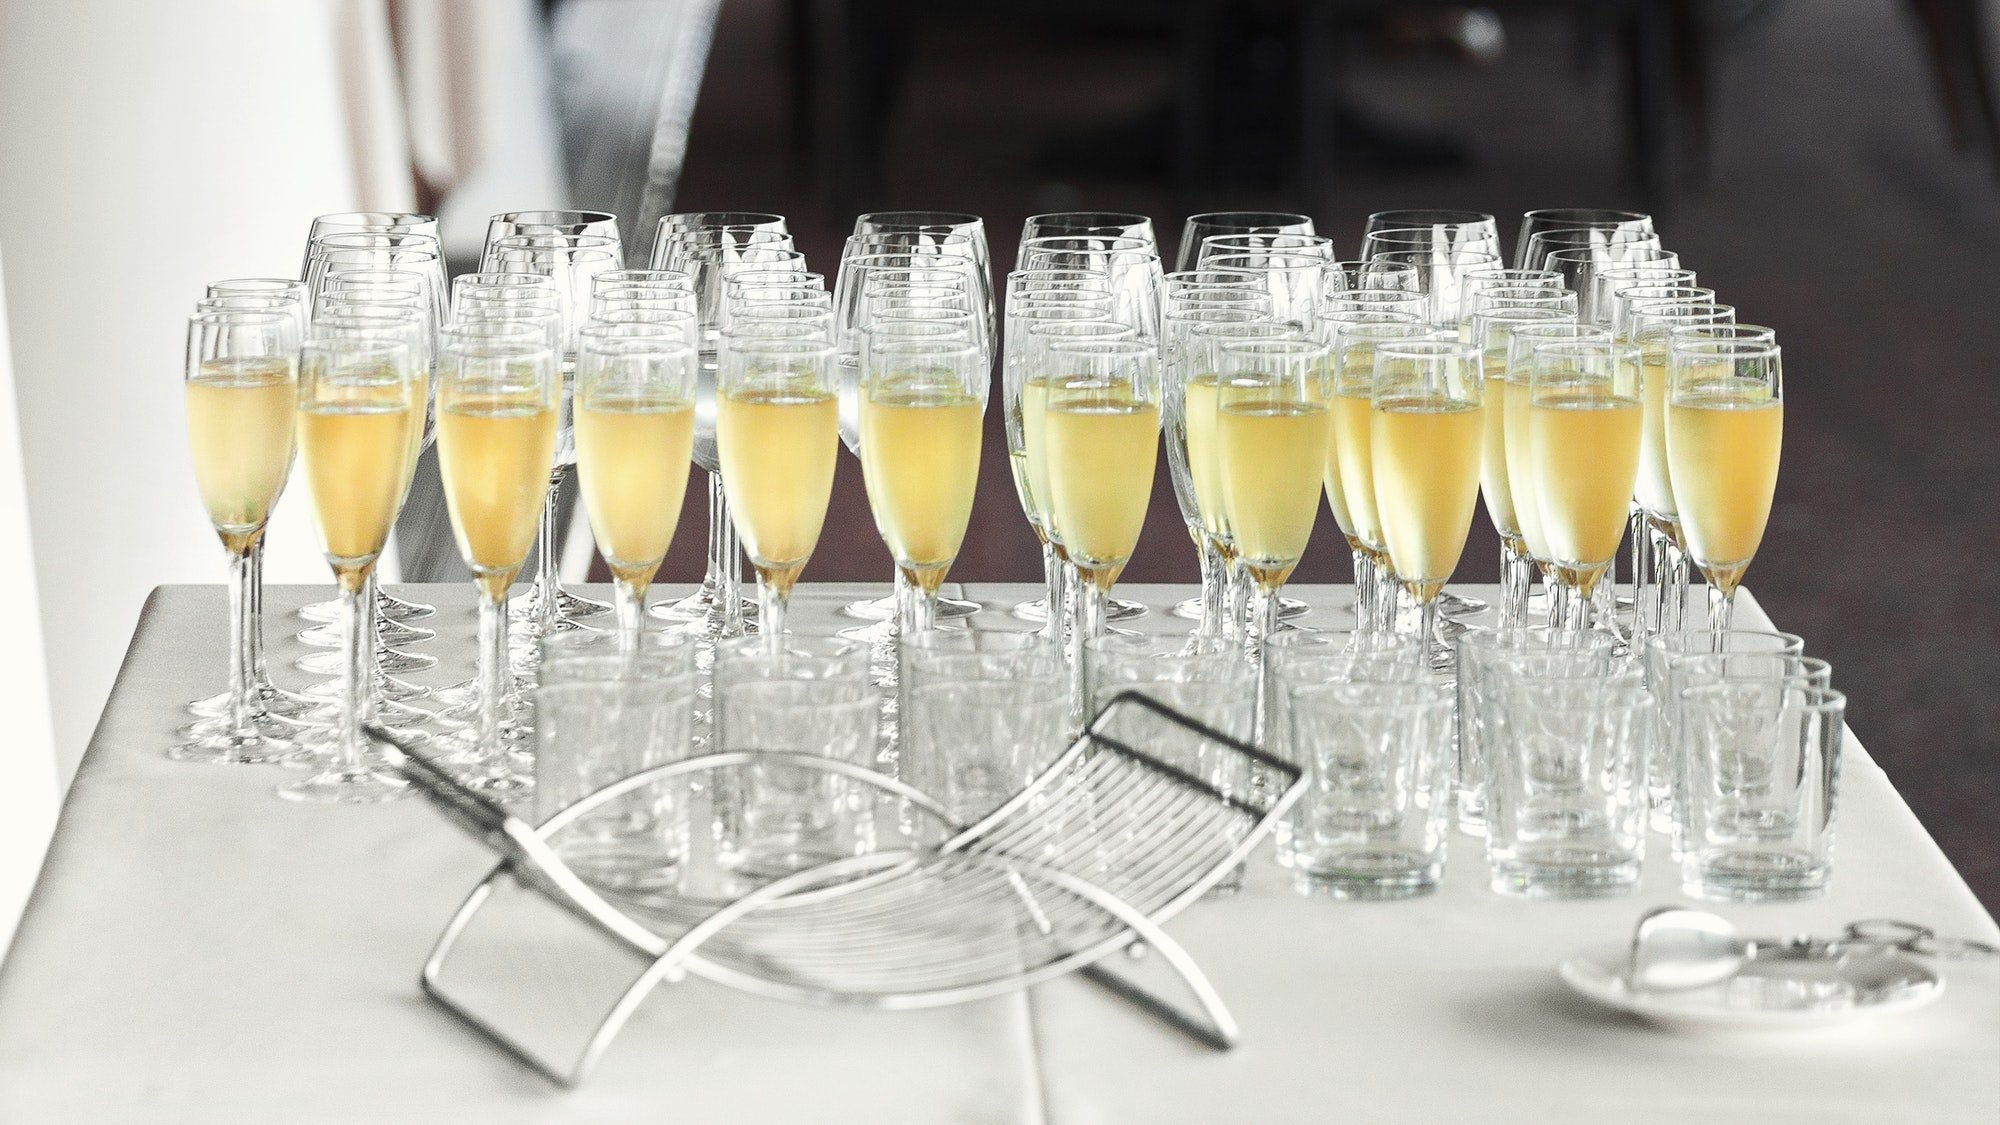 Lots of wine glasses with cool delicious champagne